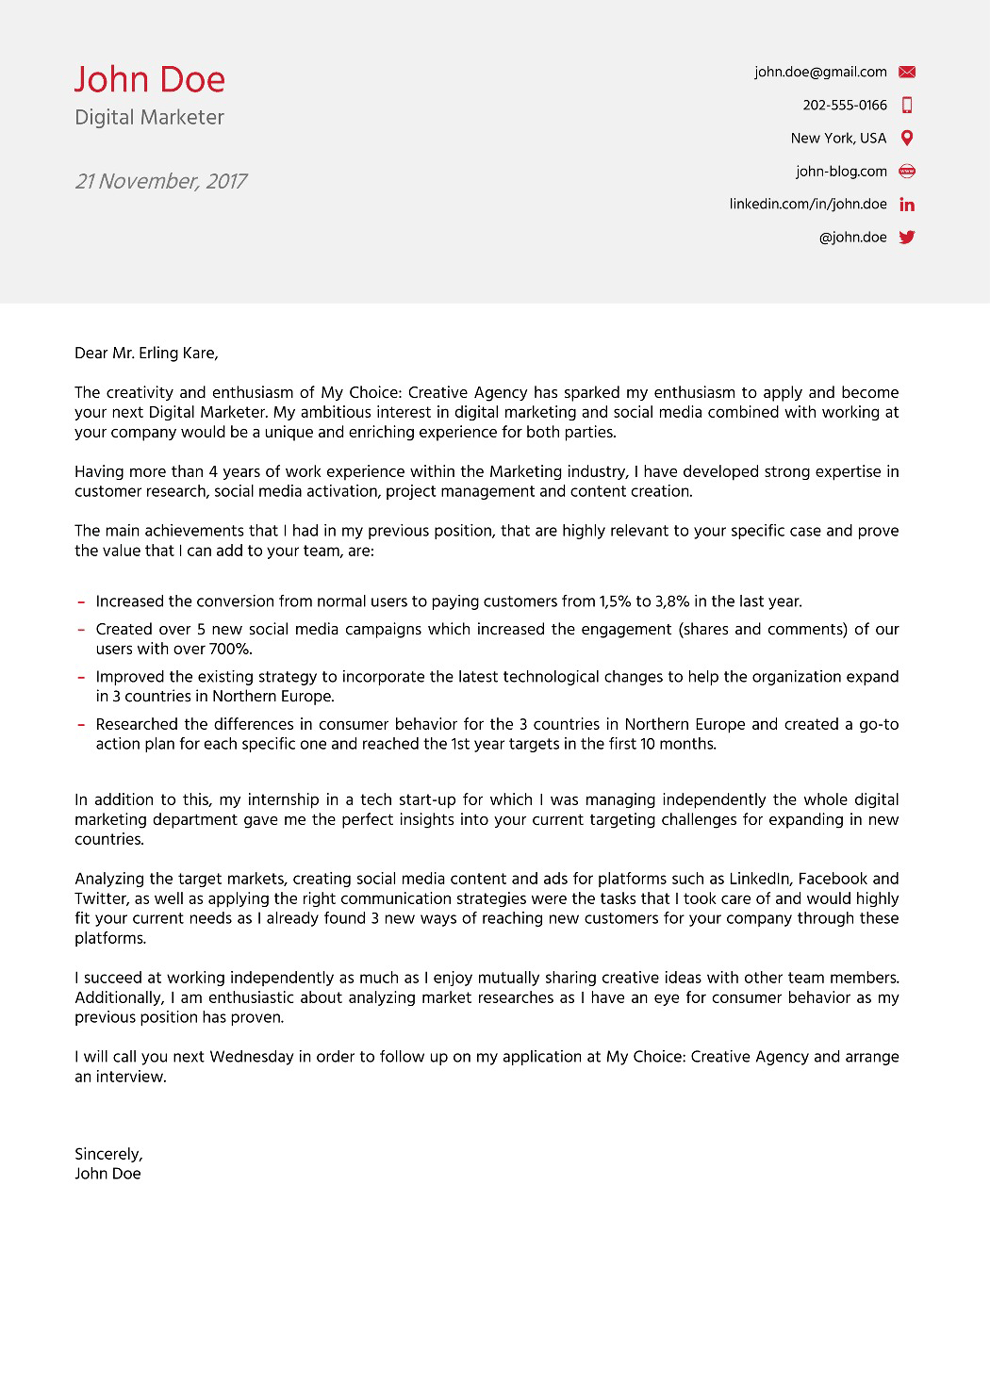 Motivation letter template masters application